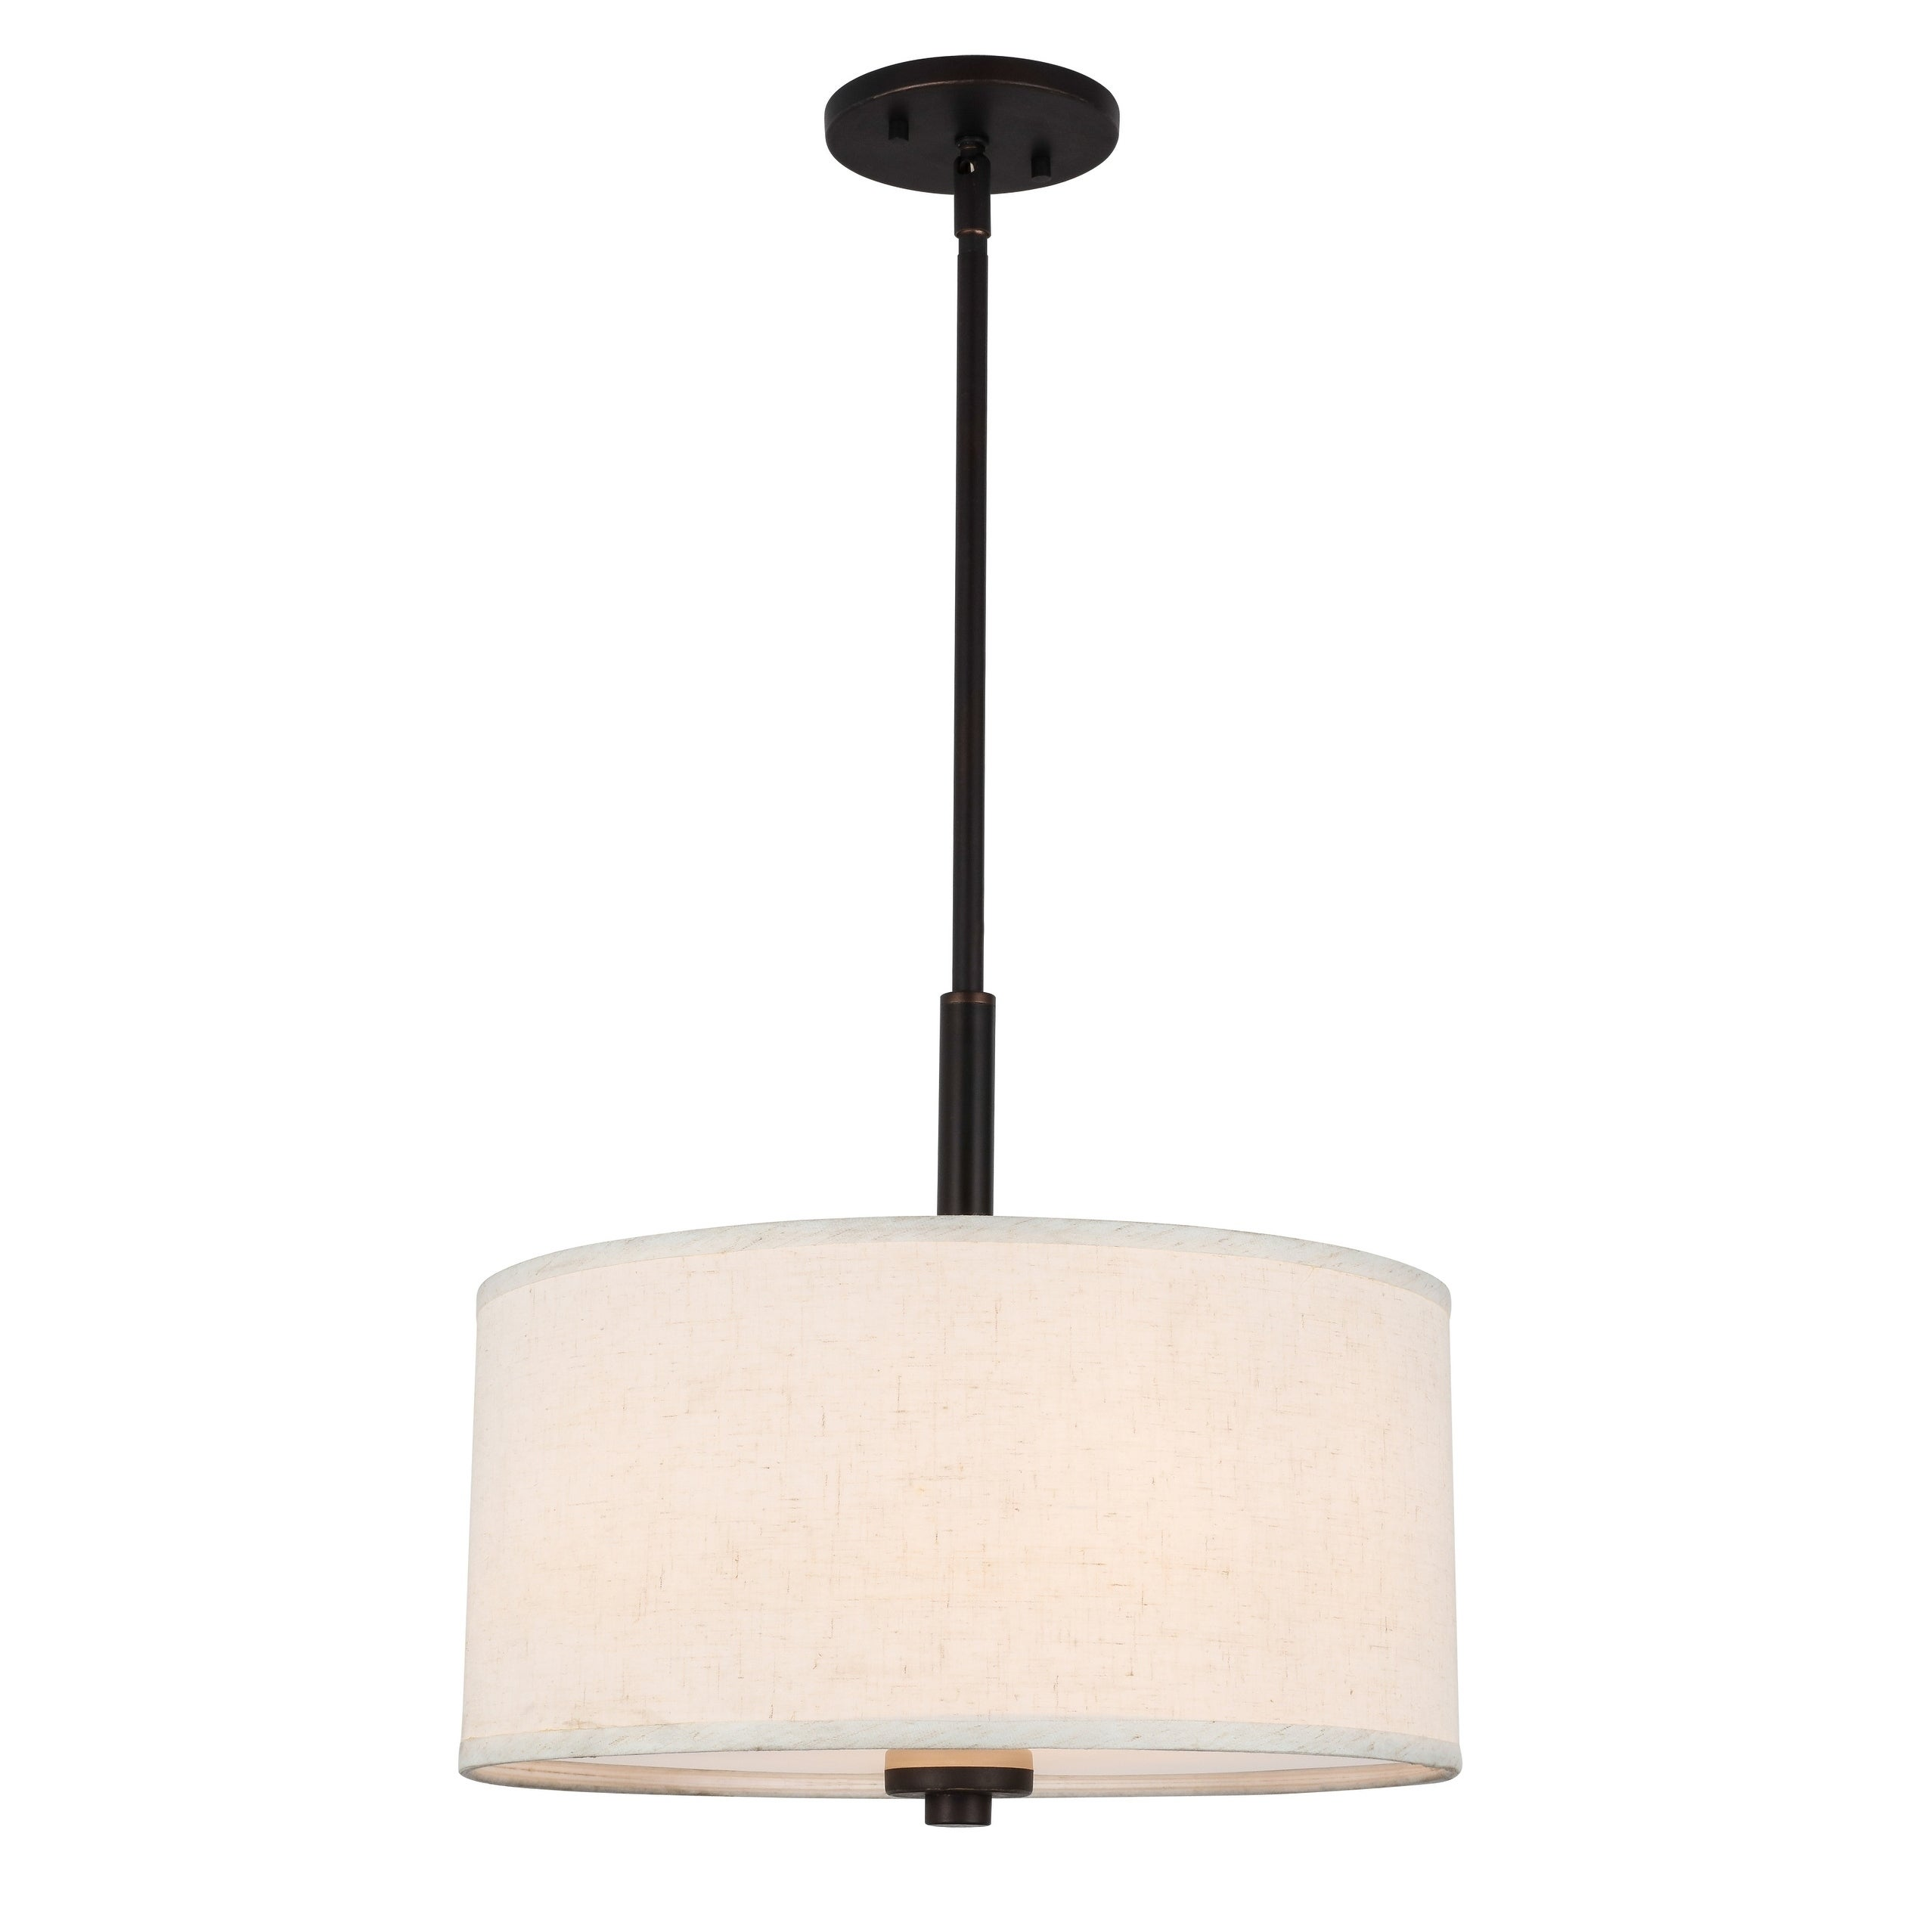 Details About Woodbridge Lighting Bronze Finish Pendant With White Fabric Drum Shade